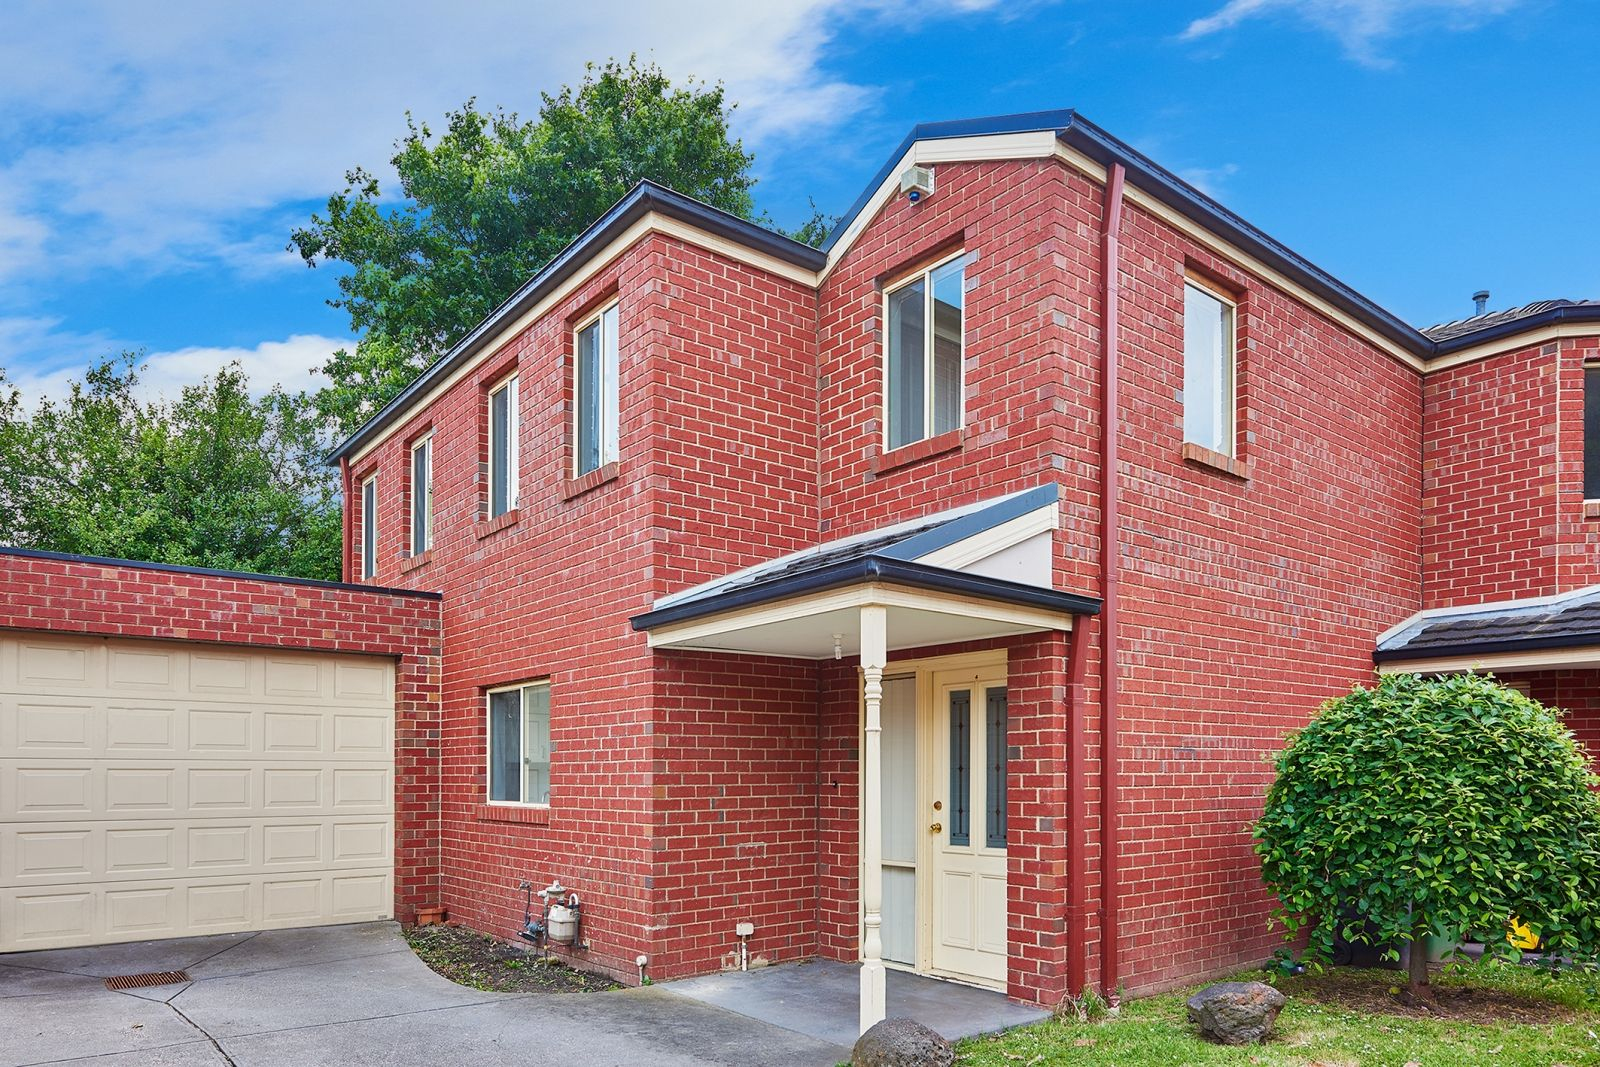 4/95 Coleman Road, Wantirna South VIC 3152, Image 0